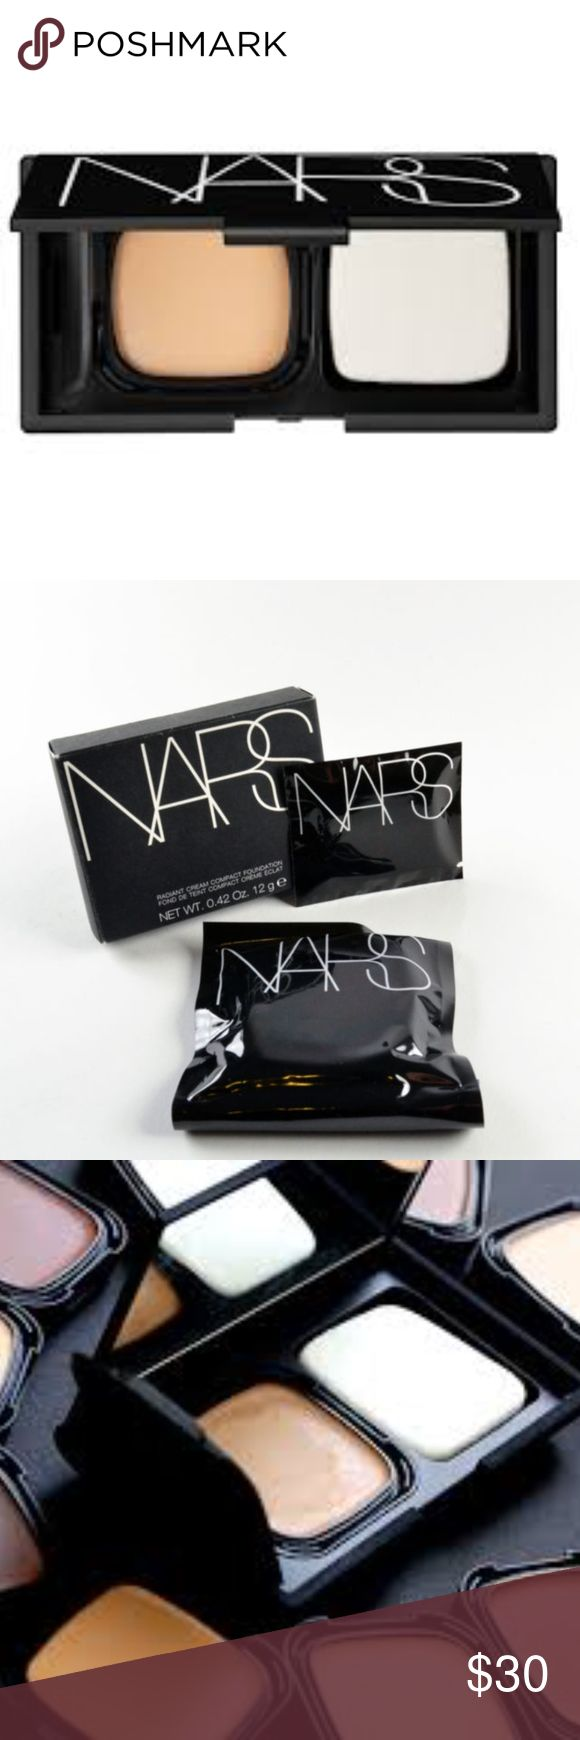 NIB NARS Radiant Cream Compact Foundation in Barce NIB NARS Radiant Cream Compact Foundation Refill in Barcelona + Sponge  DISCONTINUED in the US  VERSATILE CREAM FOUNDATION BLENDS SEAMLESSLY AND BRILLIANTLY EVENS SKIN WITH MEDIUM BUILDABLE COVERAGE AND A LIGHTWEIGHT LUMINOUS FINISH. APPLIED WET OR DRY, SKIN LOOKS SOFT, SMOOTH AND LUMINOUS. NARS Makeup Foundation